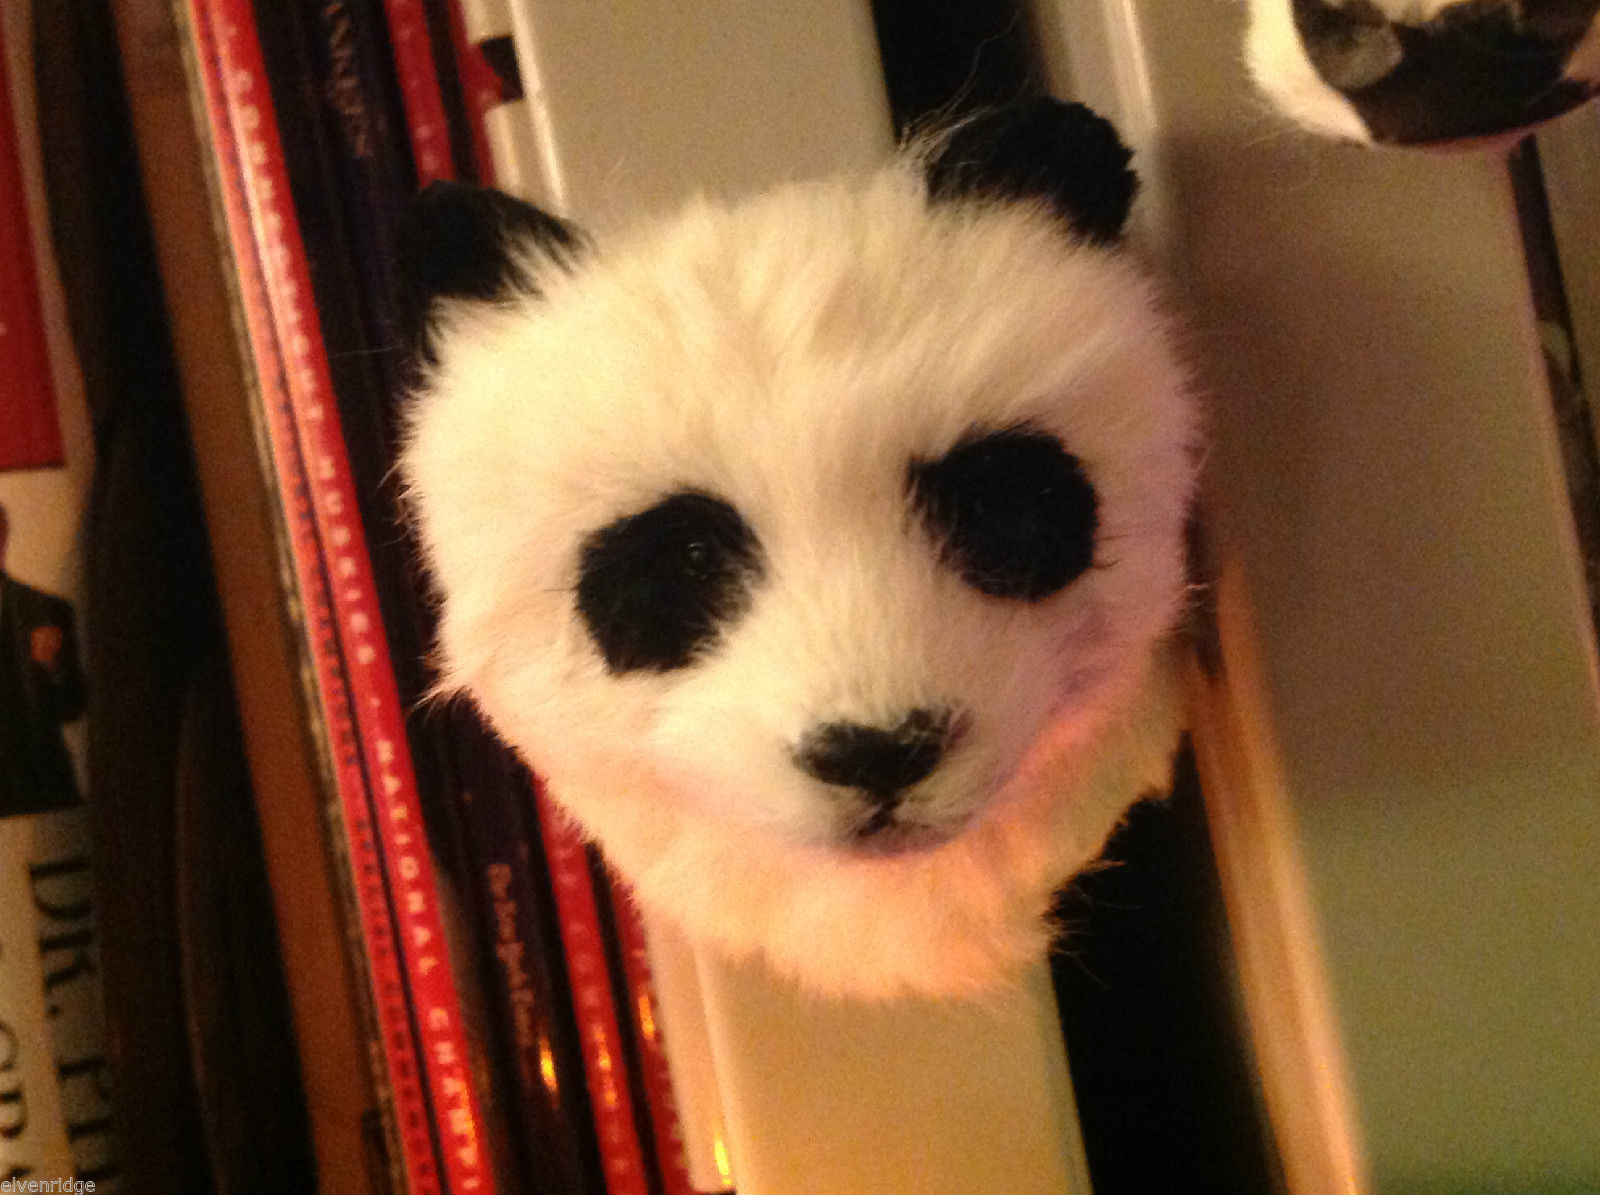 White and black panda bear   furry refrigerator magnet in 3D